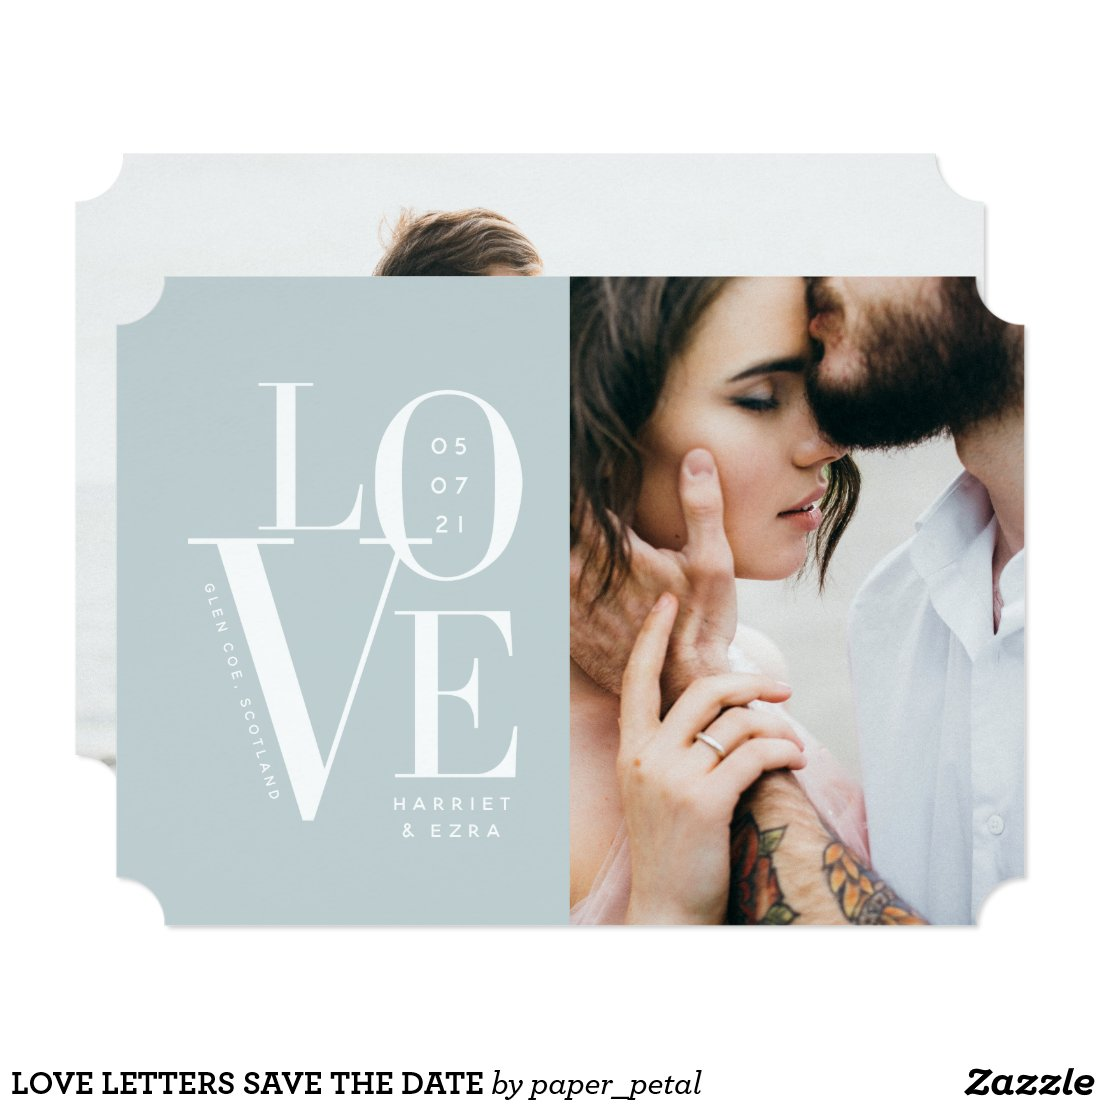 LOVE LETTERS SAVE THE DATE CARD